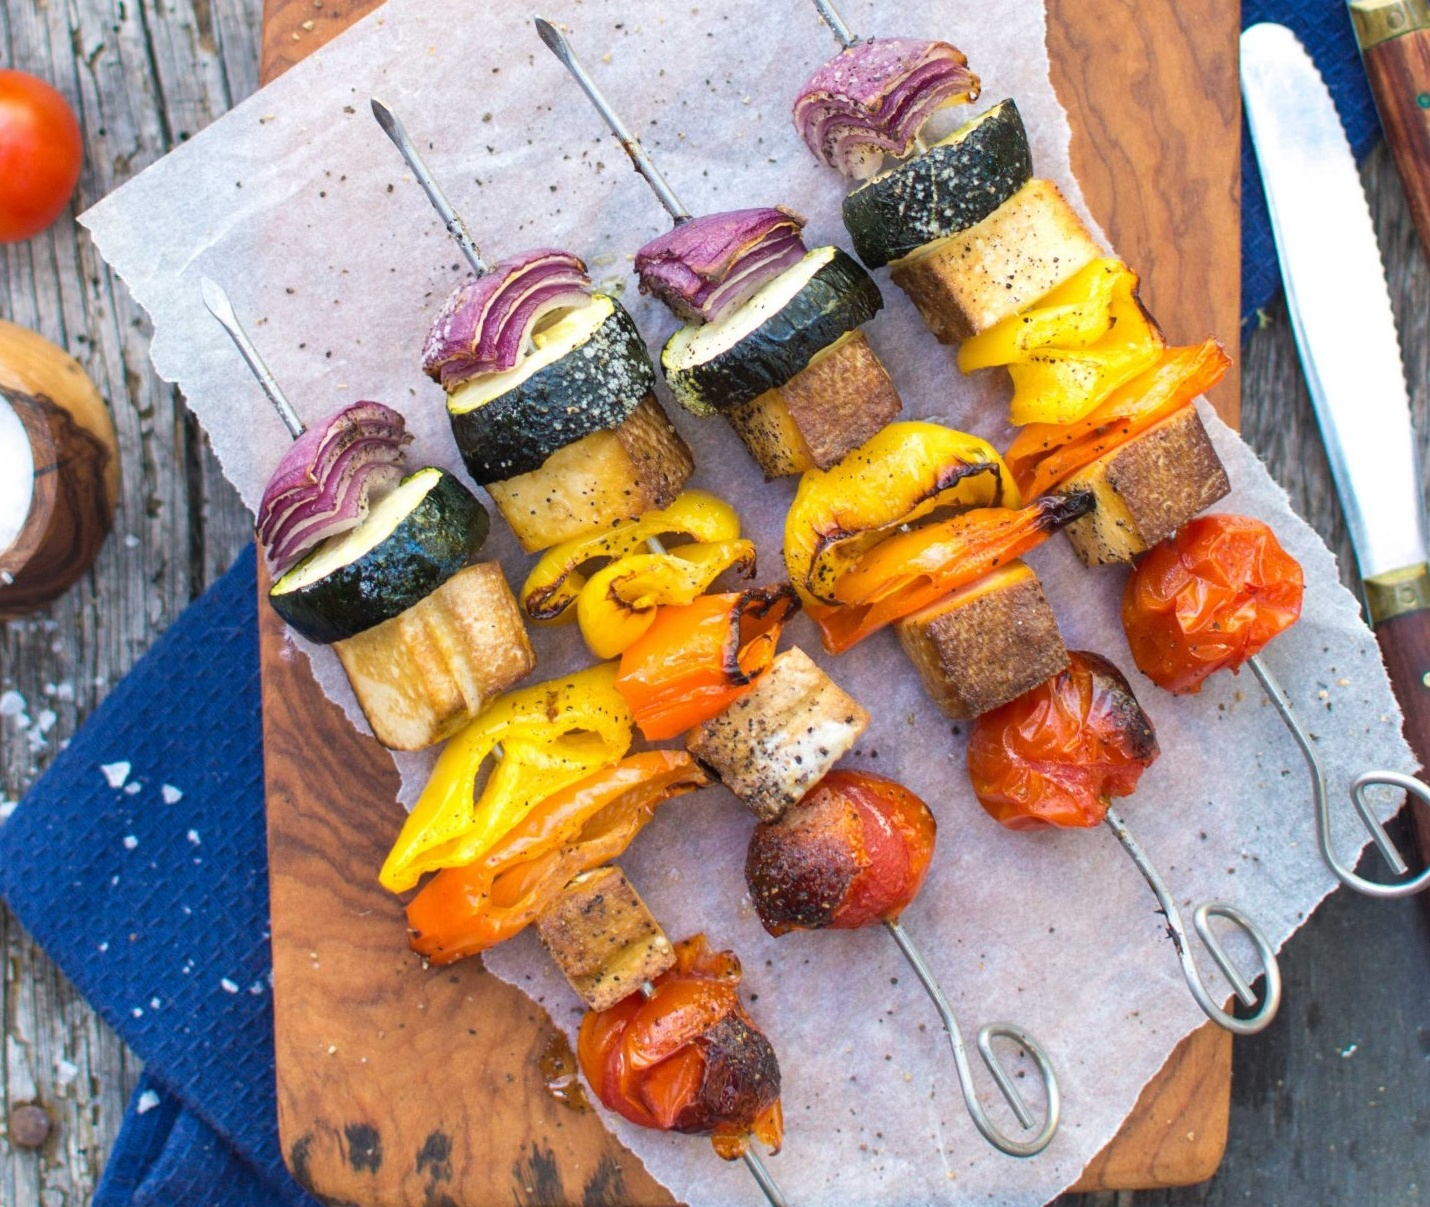 12 Savory Vegan Recipes For Your Next Barbecue